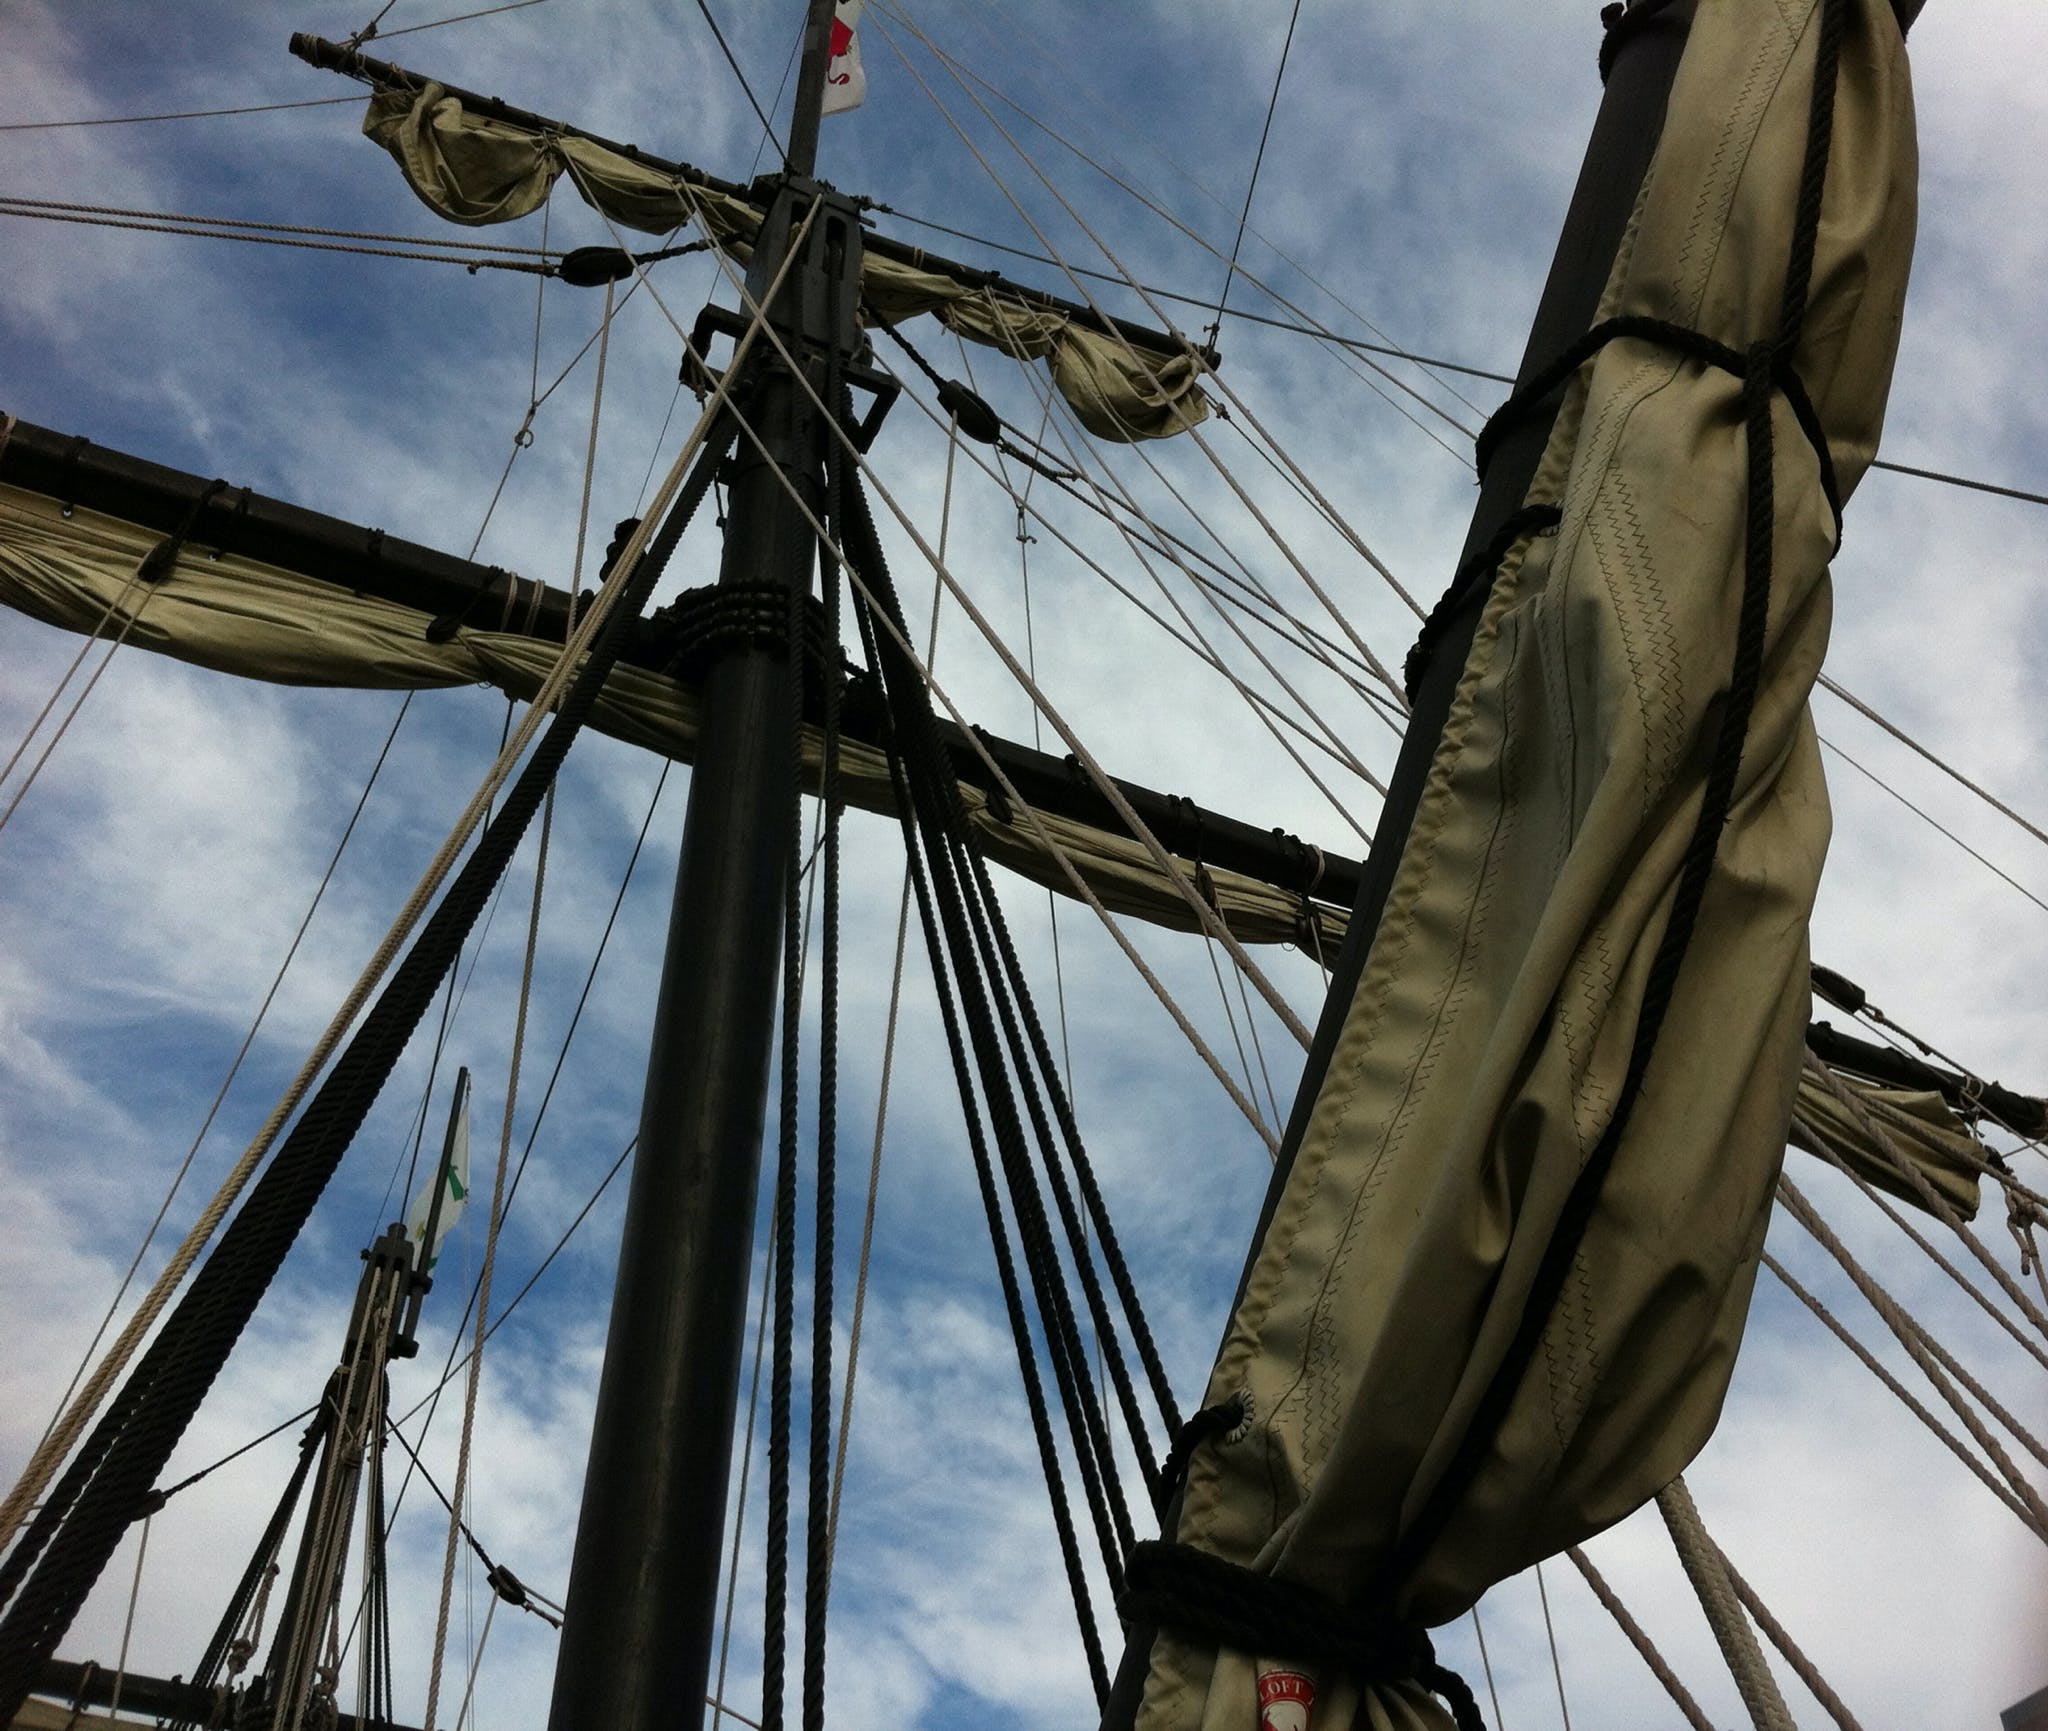 Free stock photo of sailing ship, boat, ship, rope